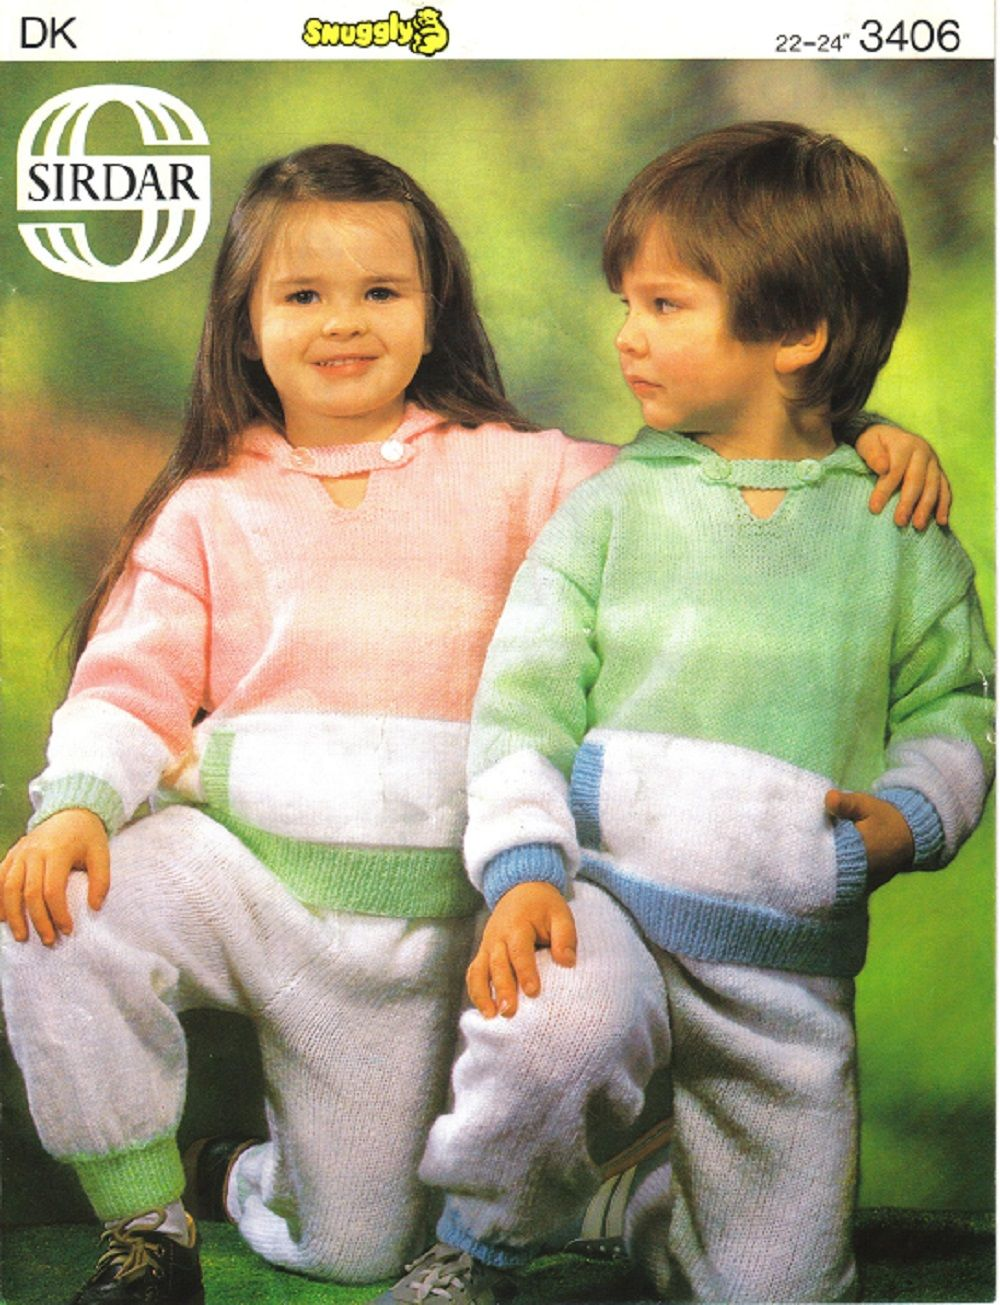 Sirdar knitting pattern 3406 childrens play suit sweater with sirdar knitting pattern 3406 childrens play suit sweater with hood trousers bankloansurffo Image collections